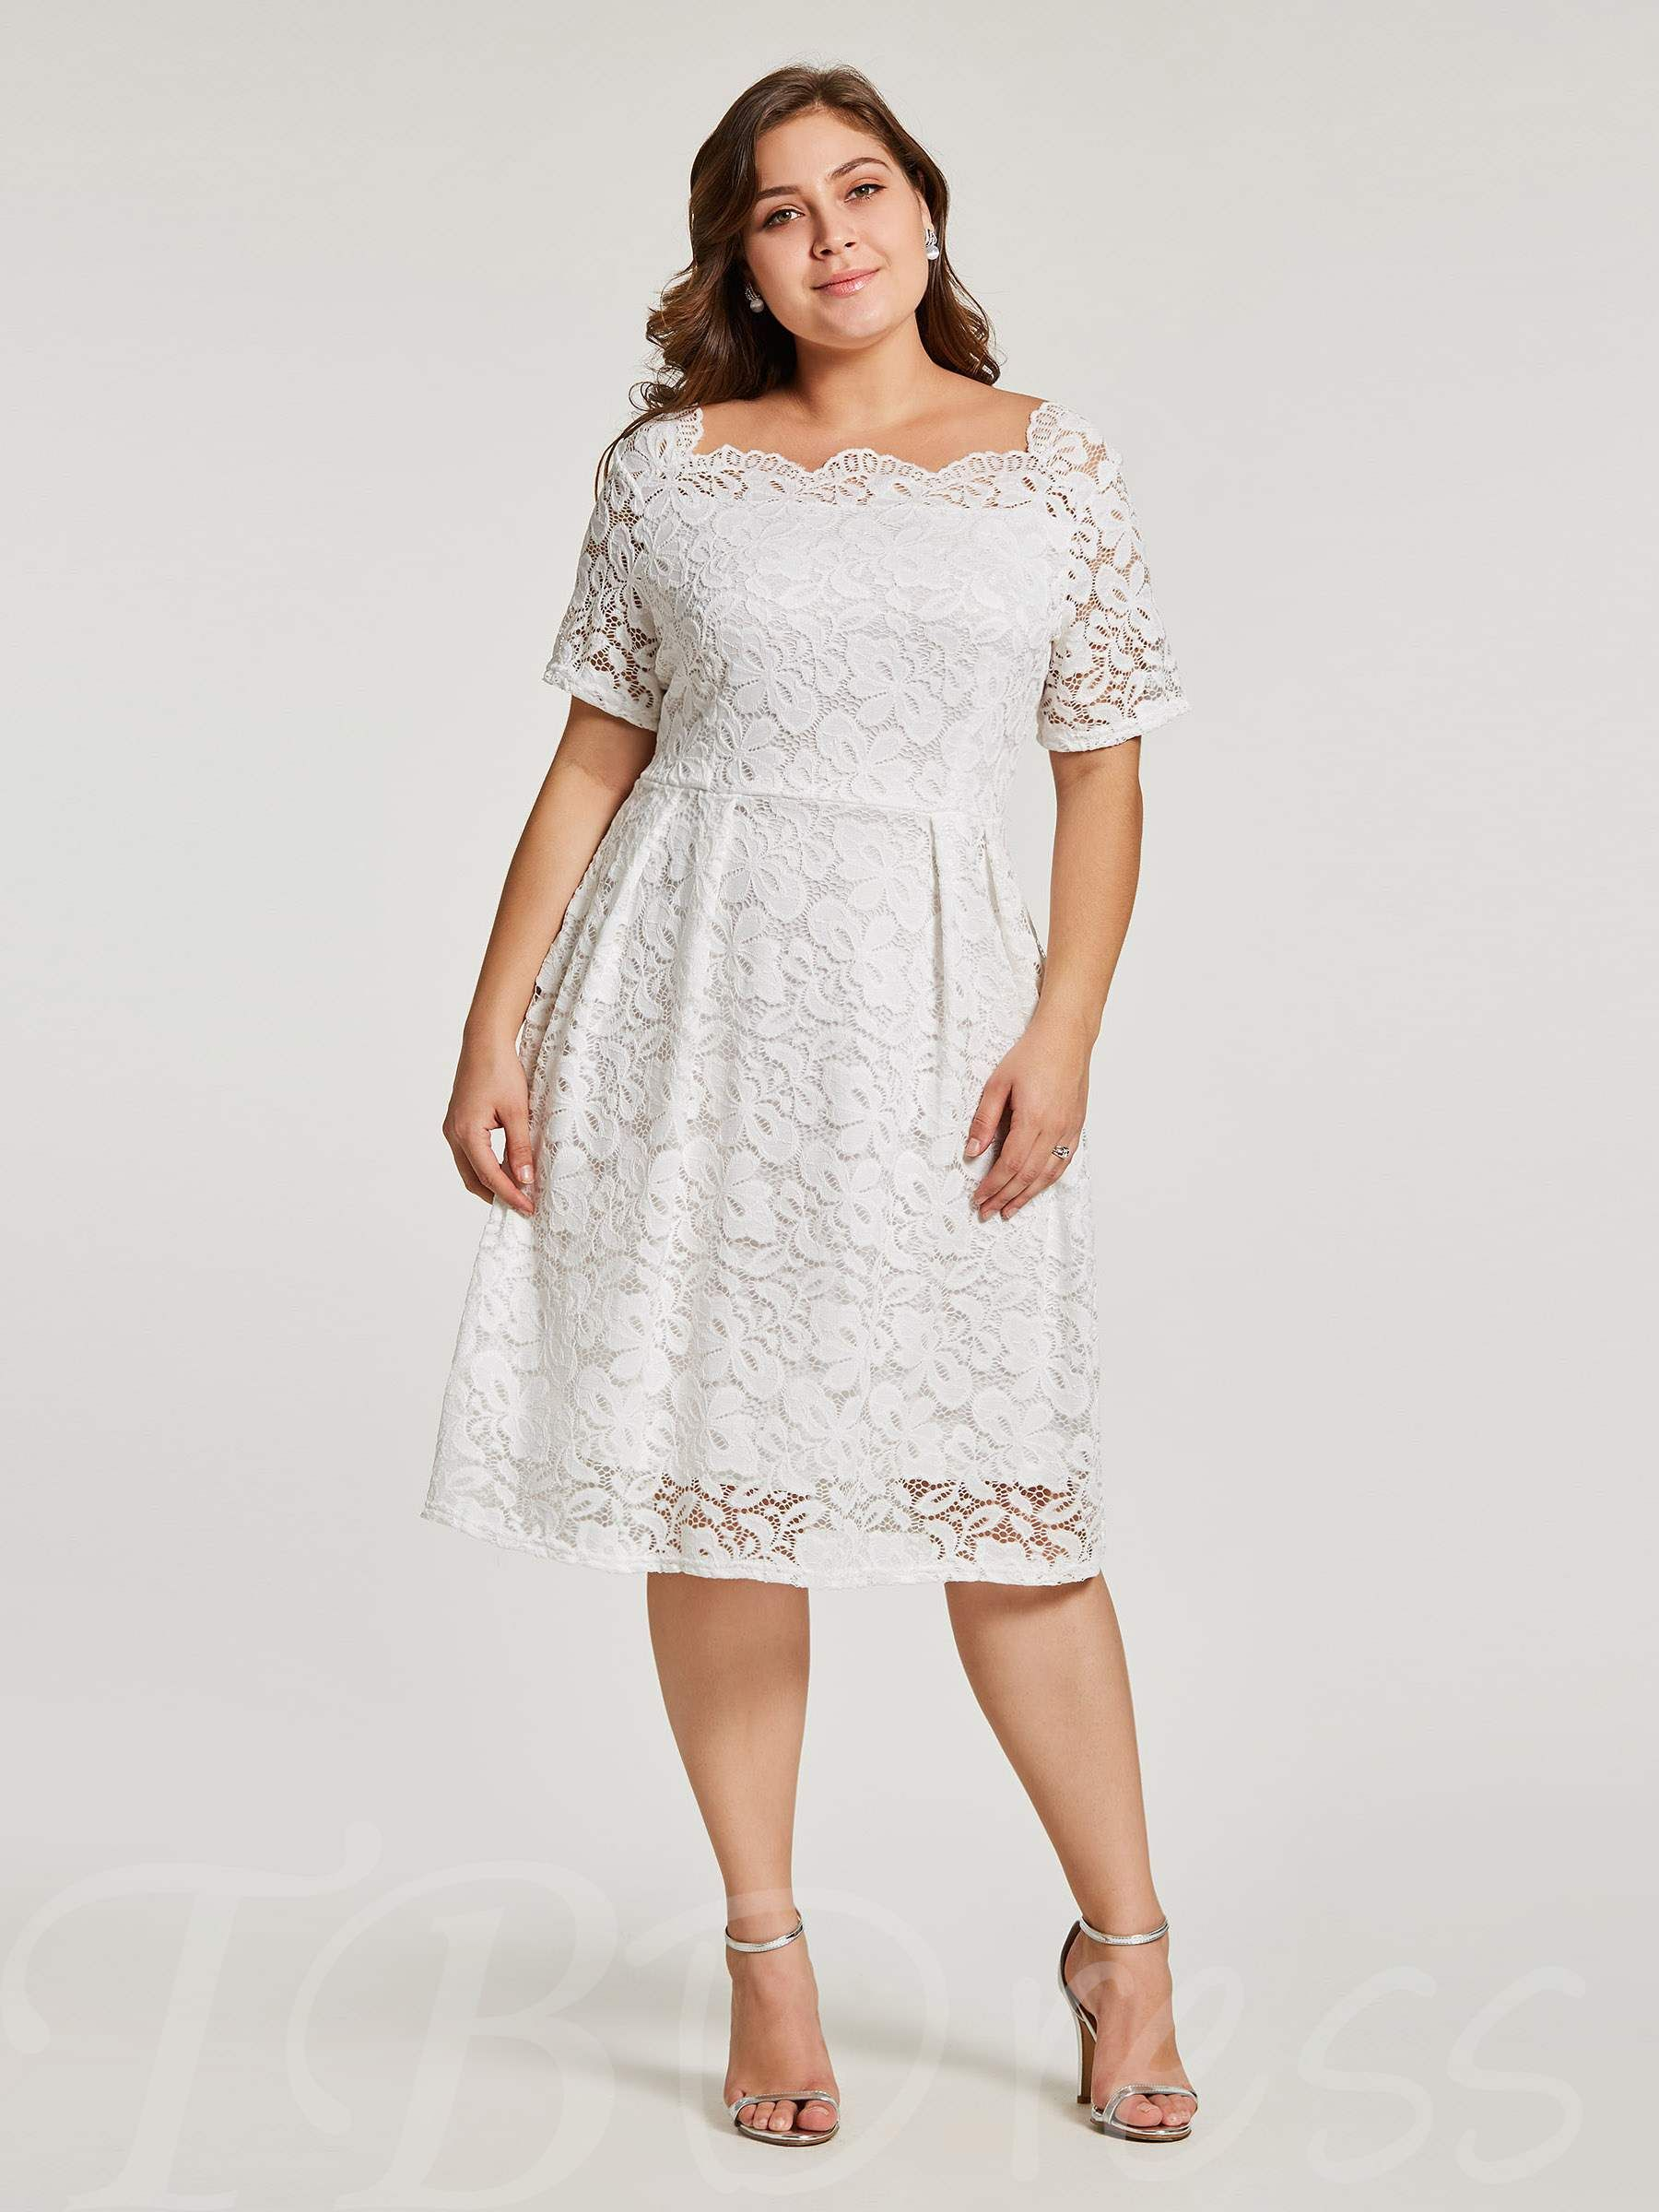 Plus Size White Lace Short Sleeve A-Line Dress | My turn ...